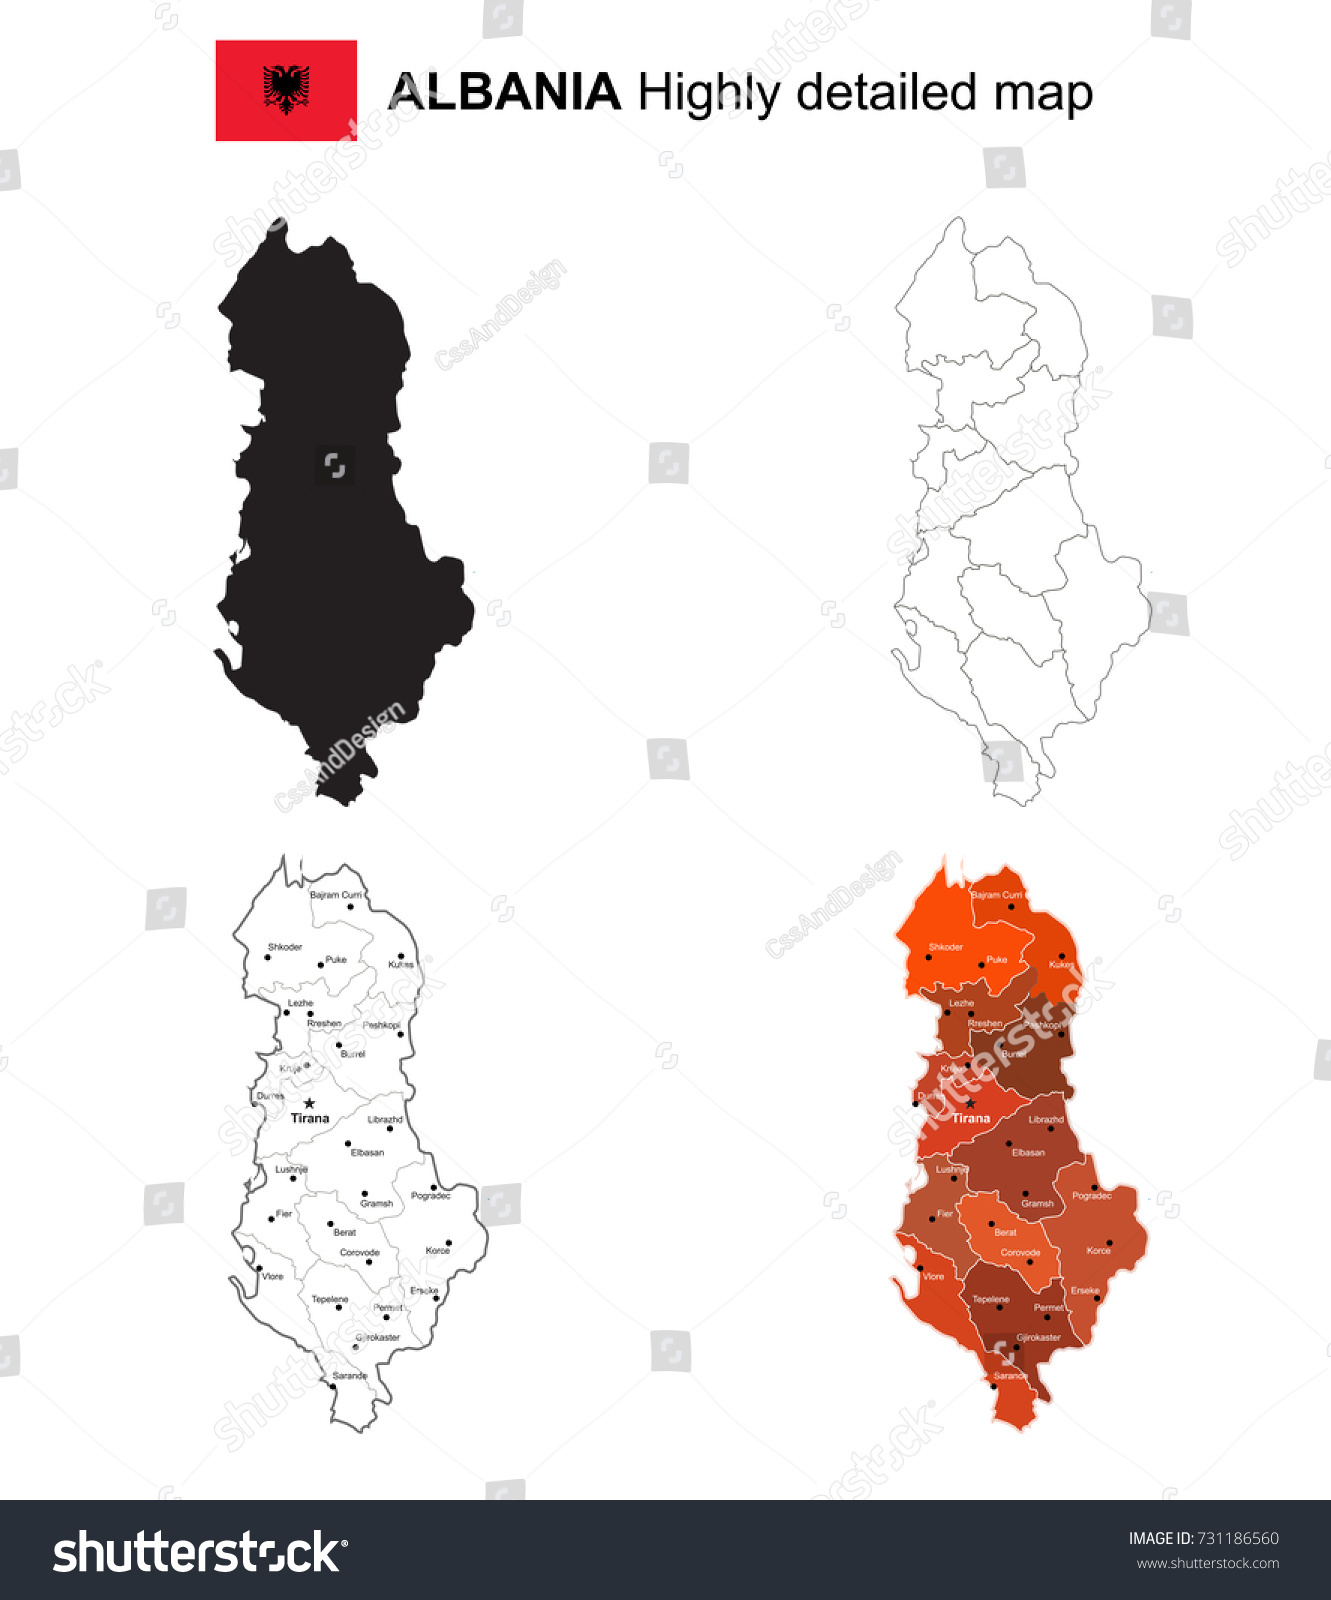 Albania Isolated Vector Highly Detailed Political Stock Vector - Political map of albania